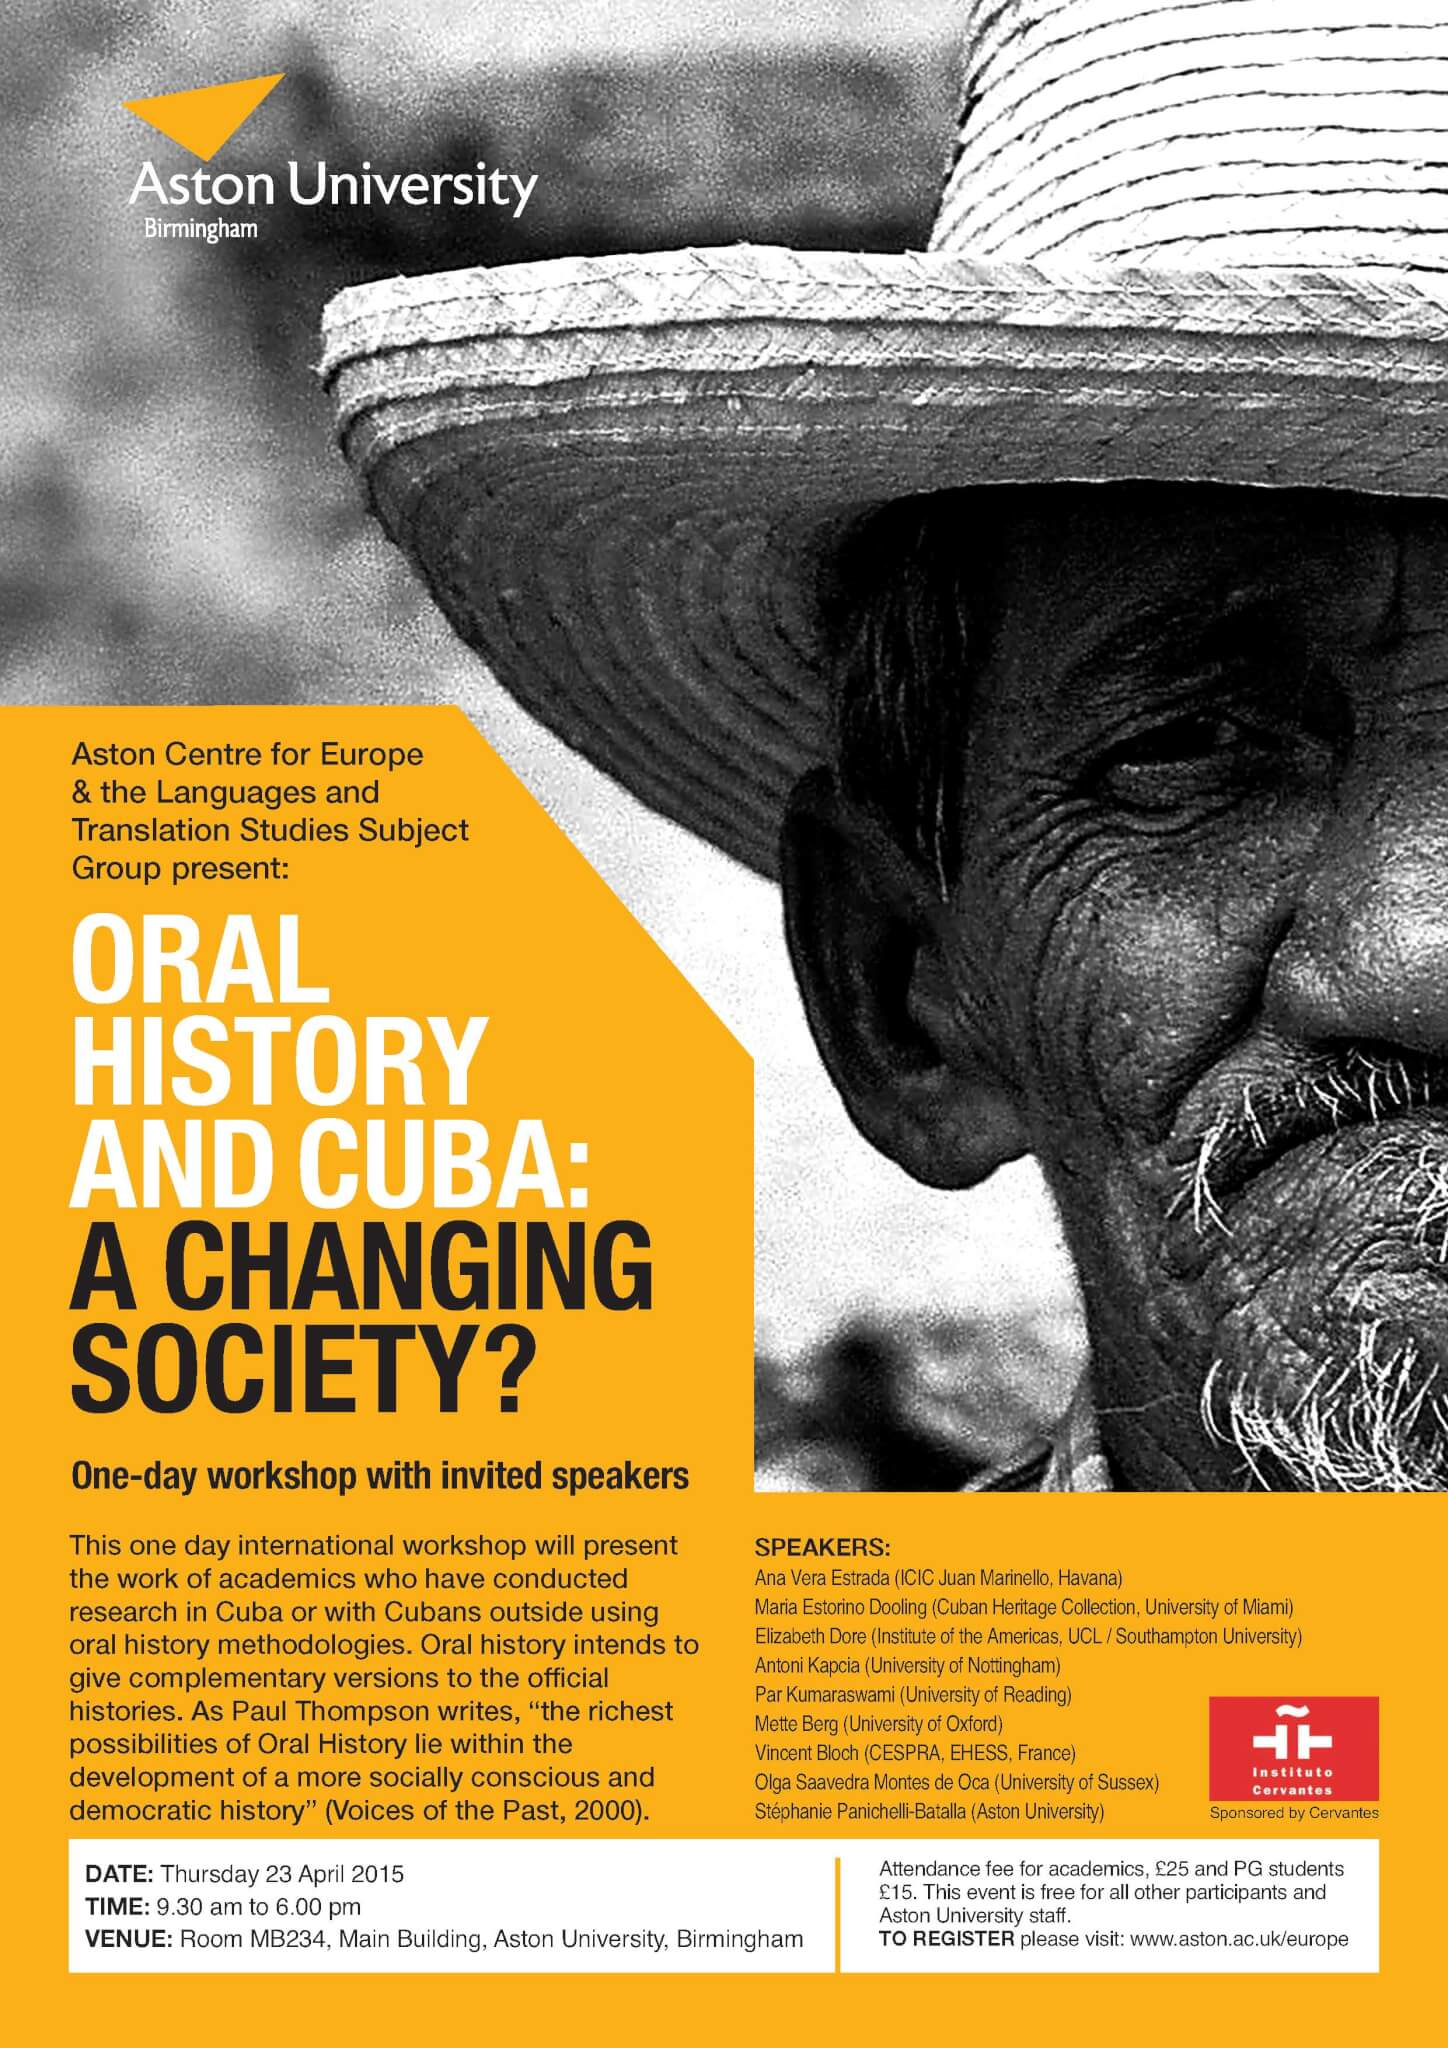 Oral History and Cuba: A Changing Society?